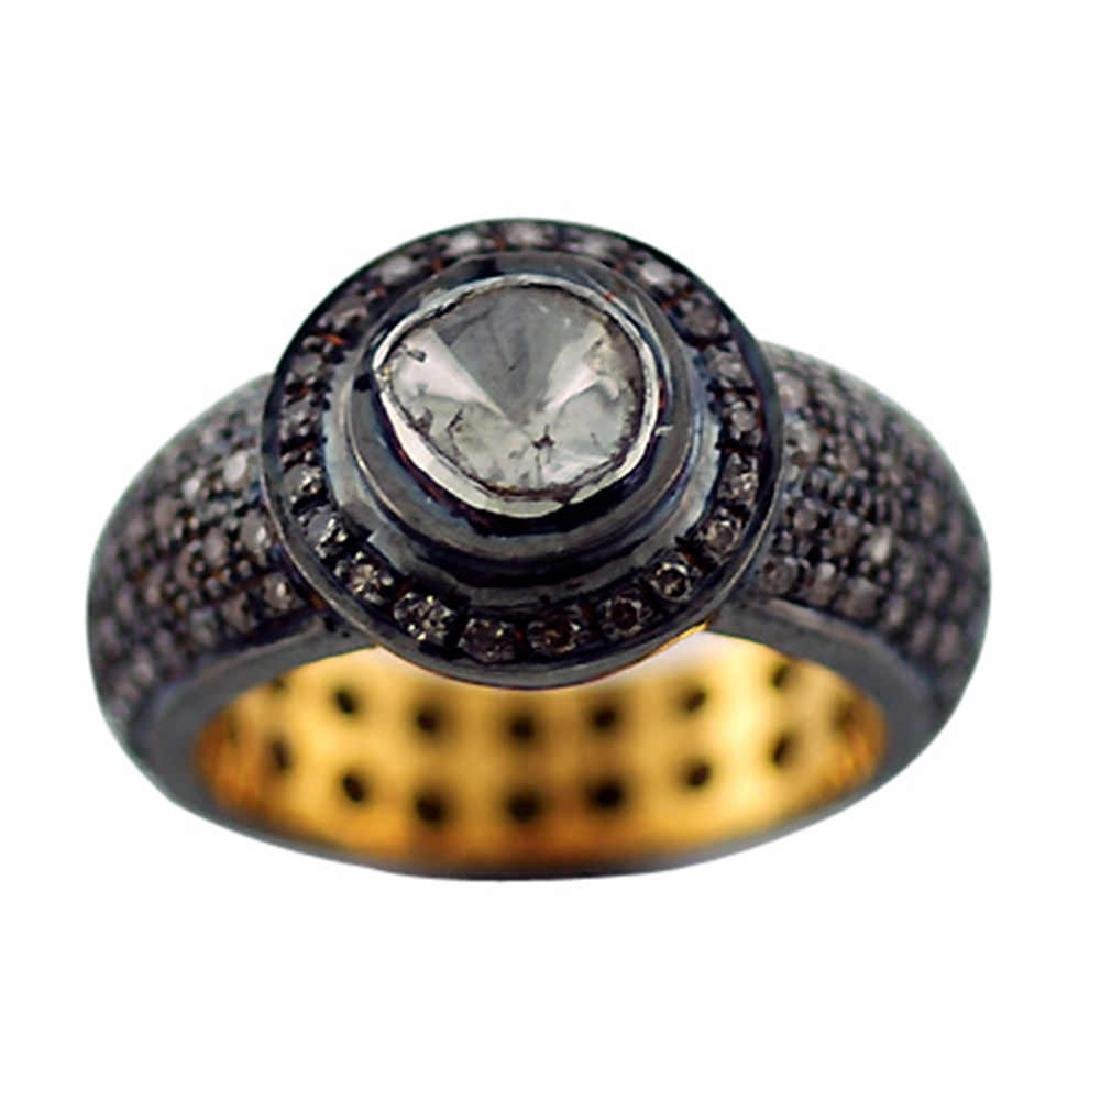 Rhodium Plated Gold Silver Diamond Ring, 1.4ctw - 2